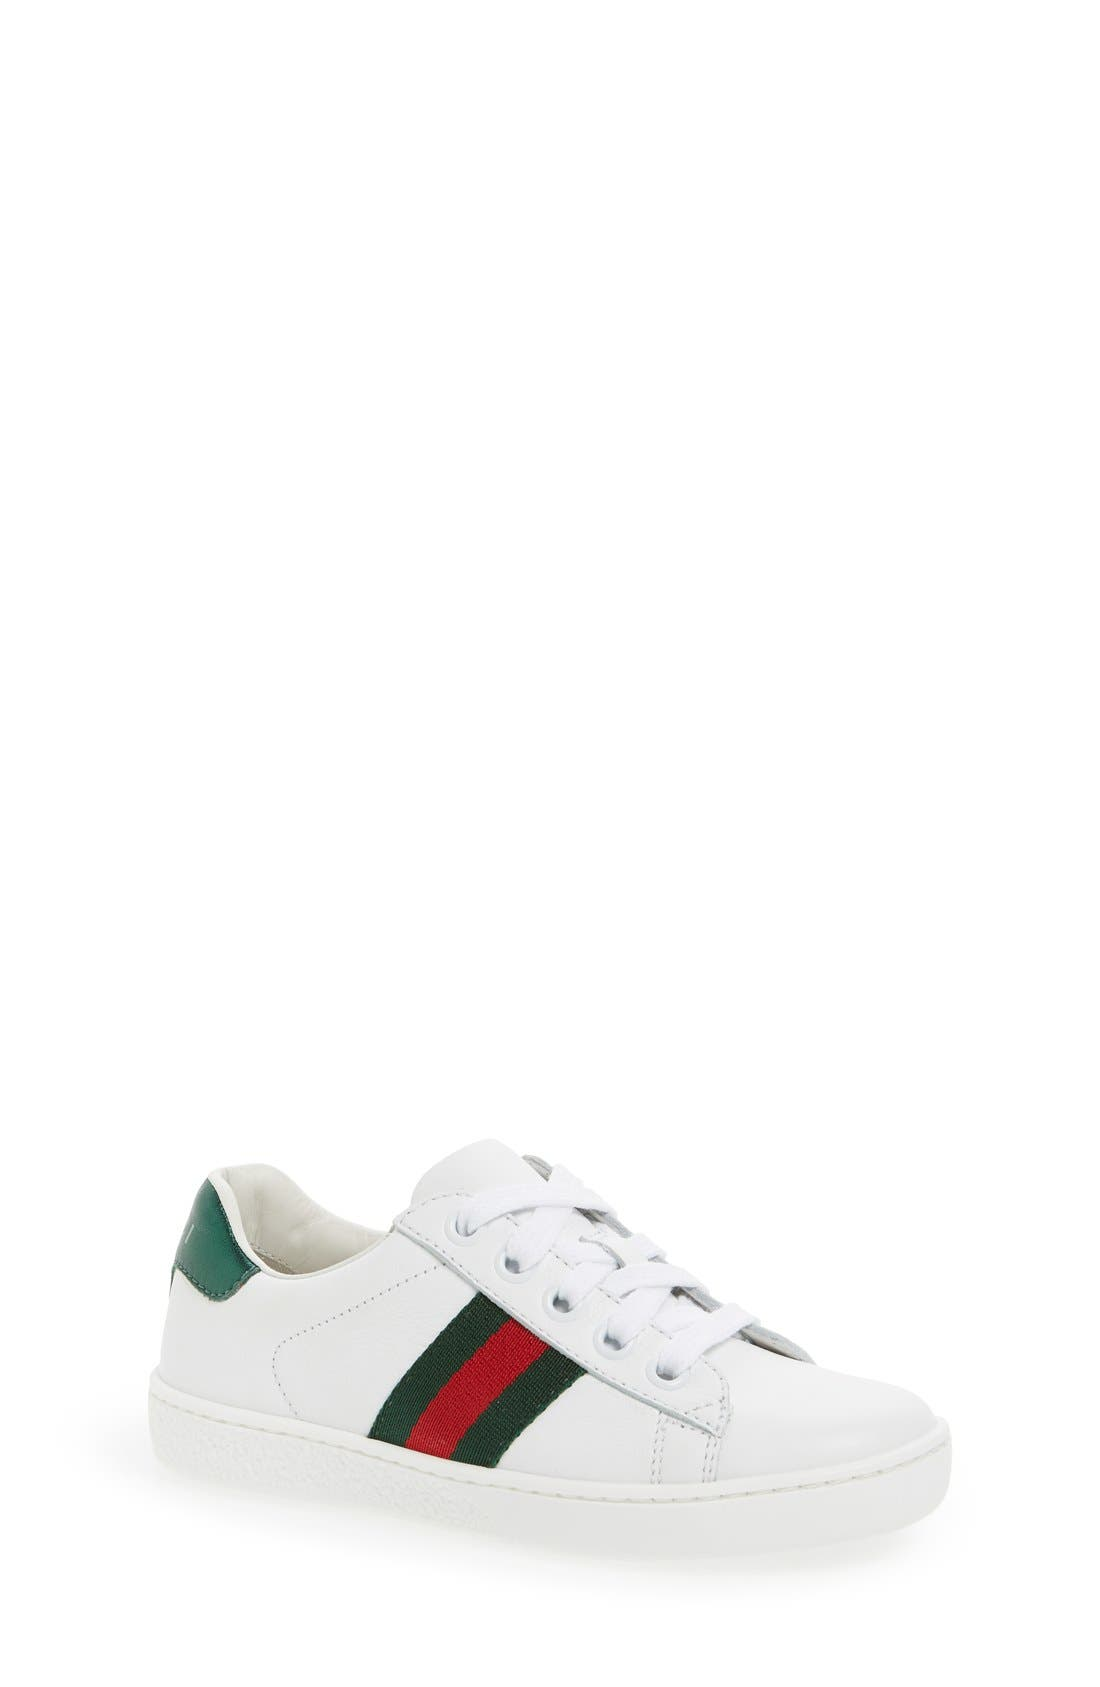 Main Image - Gucci 'Ace' Sneaker (Walker, Toddler & Little Kid)